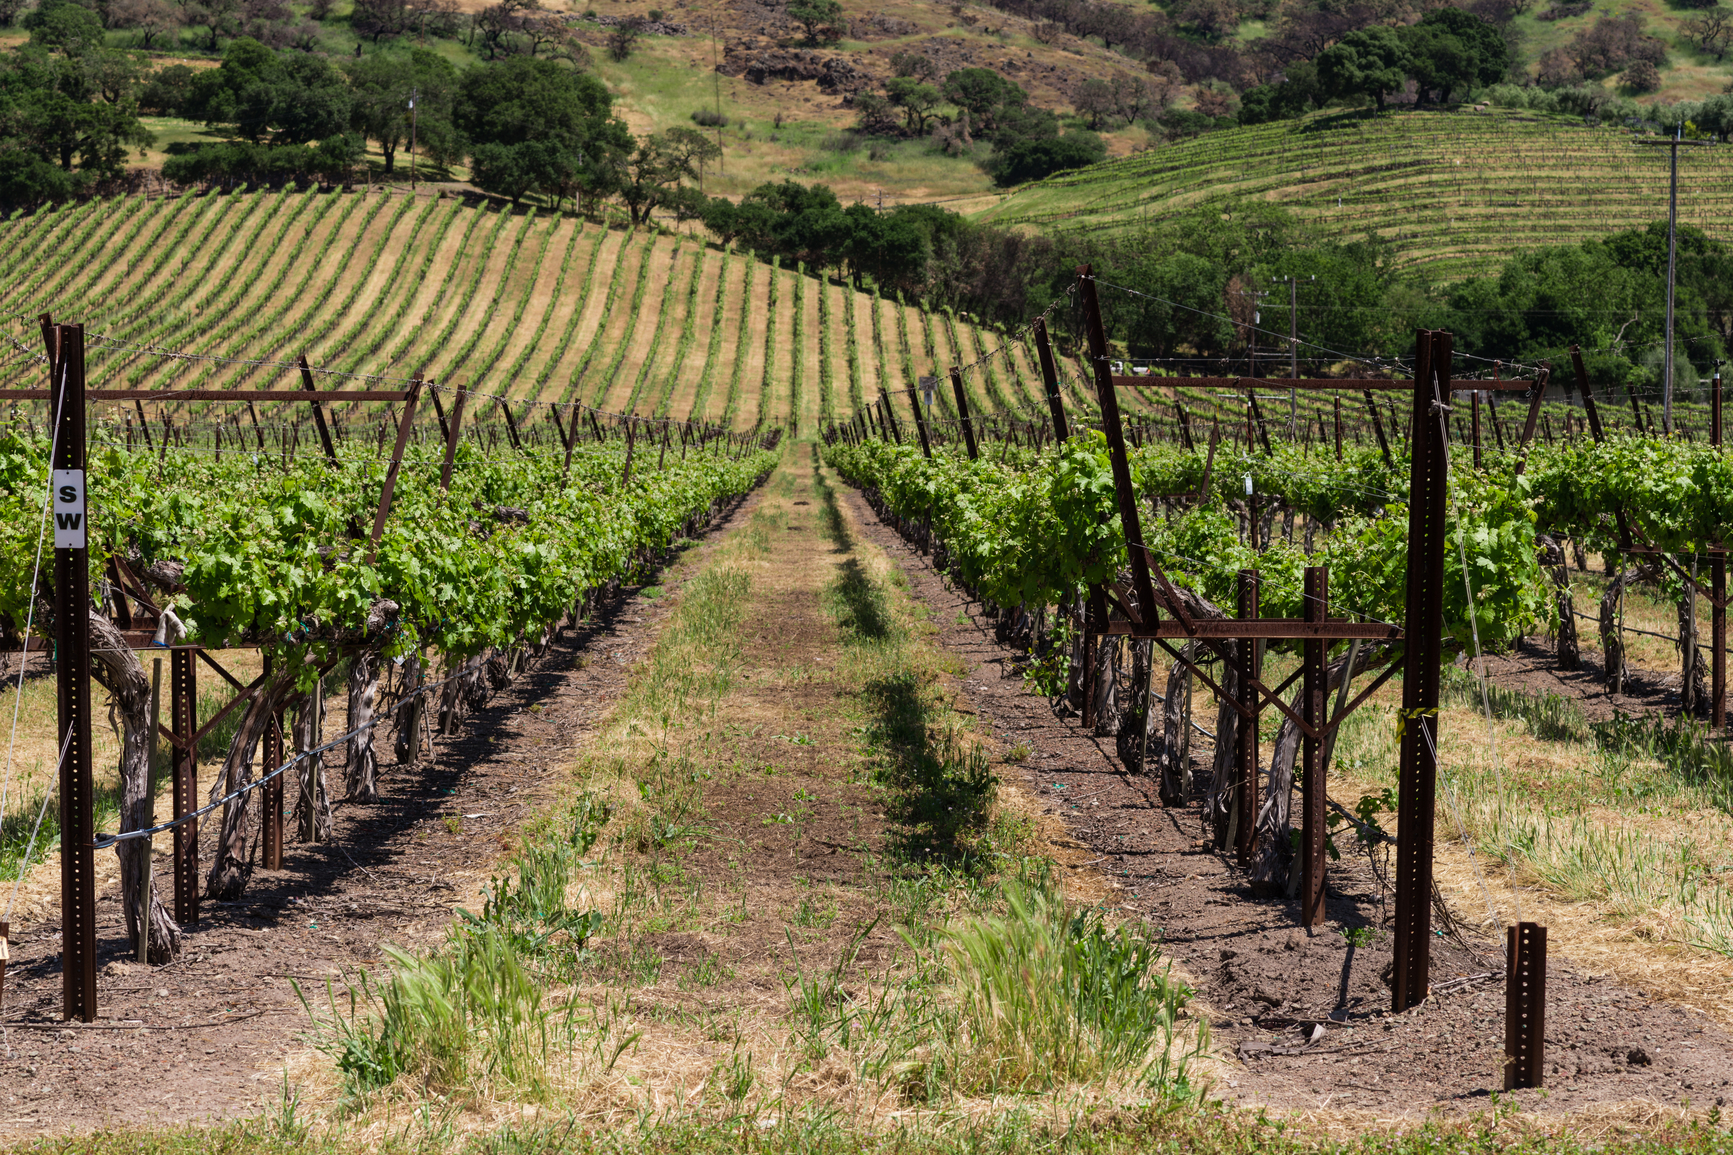 California vineyards have a different trellis system to other places